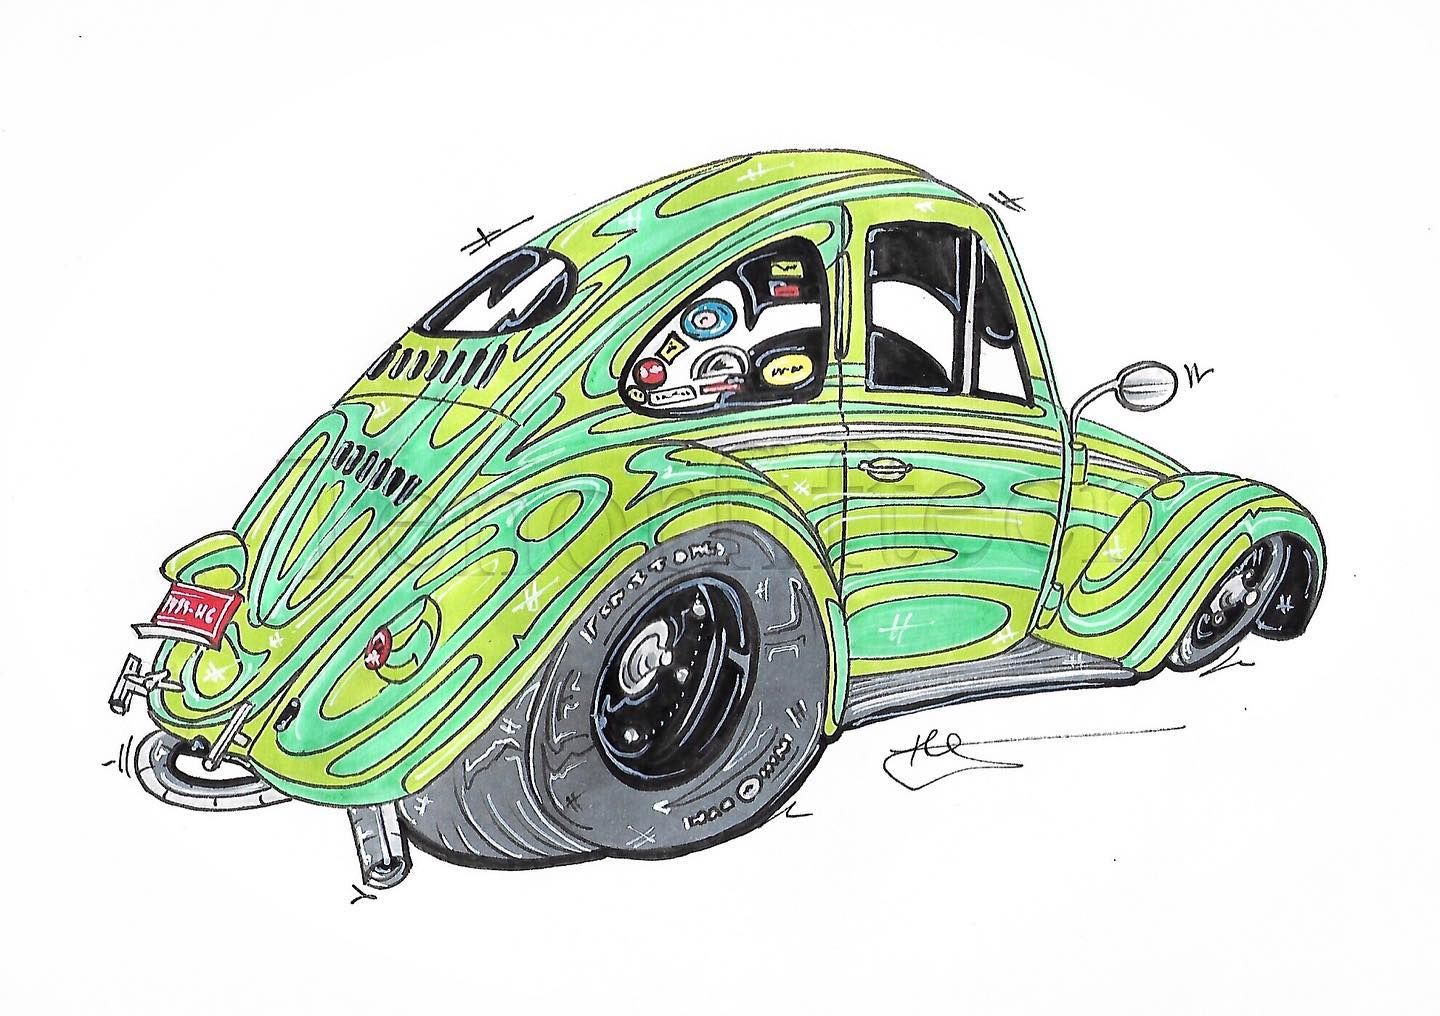 @fiftysixvw s #callook #ovalwindow #calbug #ovalbug #vwbeetle #volkswagen #beetle #bug as a #drawing #cardrawing inquire for pricing and commissions